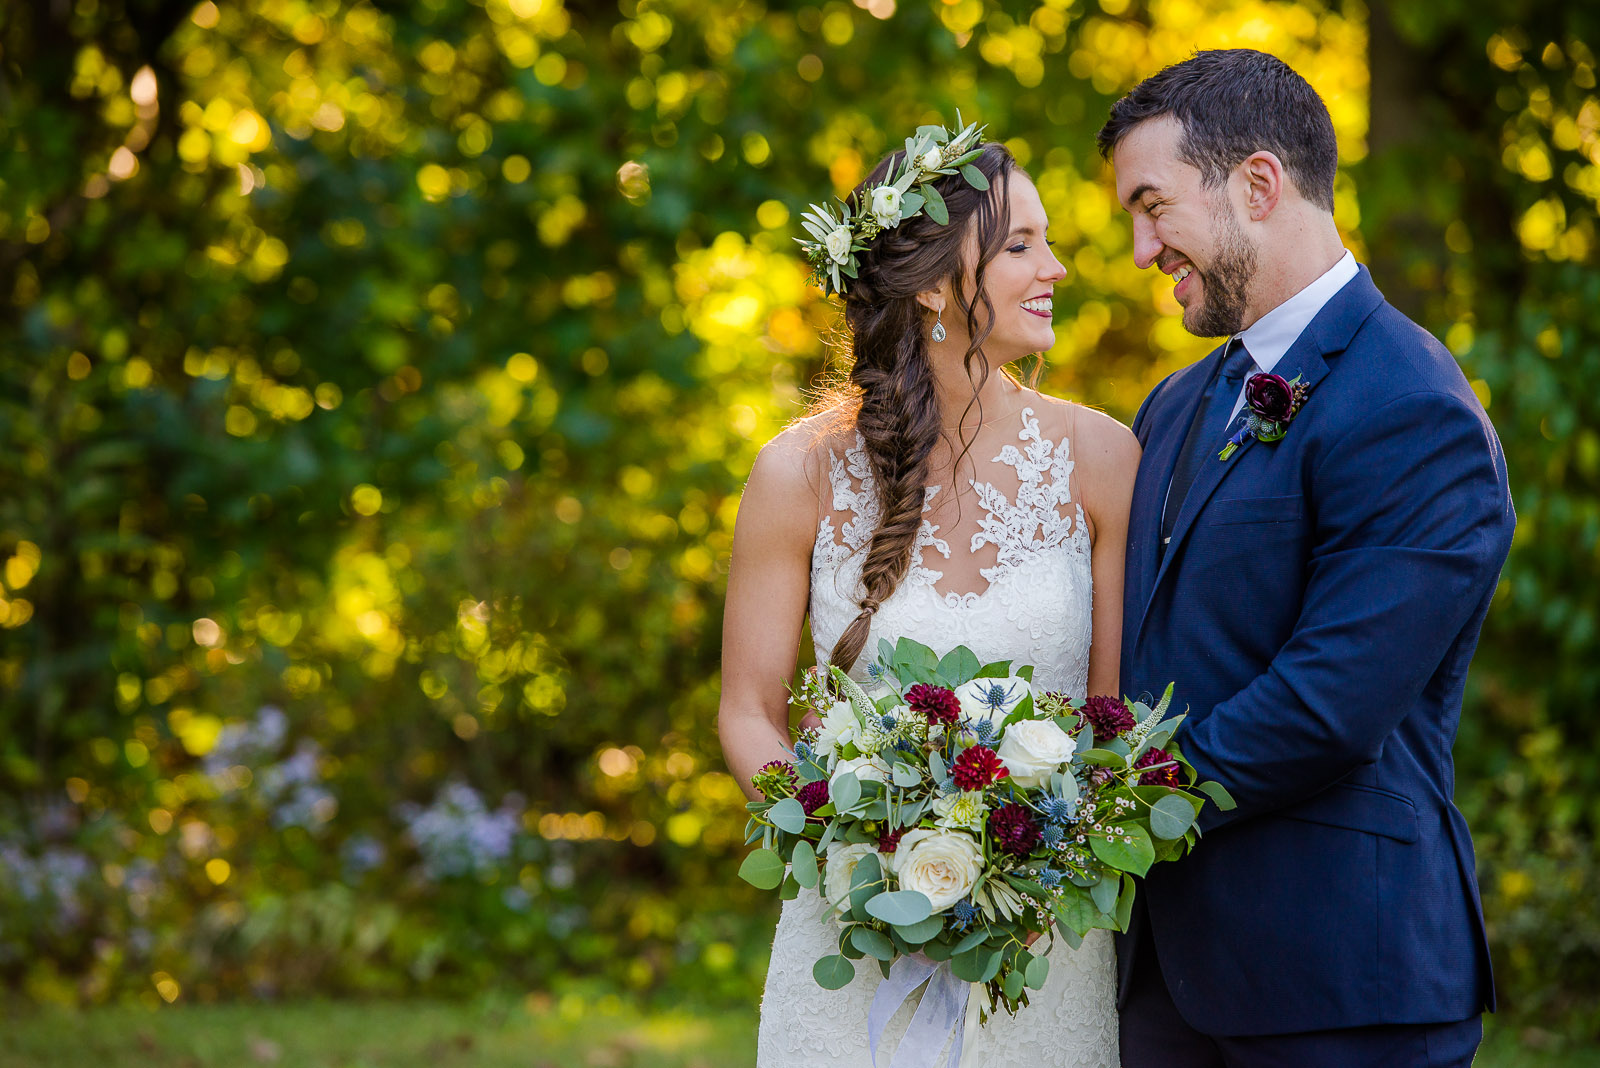 Eric_and_Christy_Photography_Blog_2018_Portraits-42